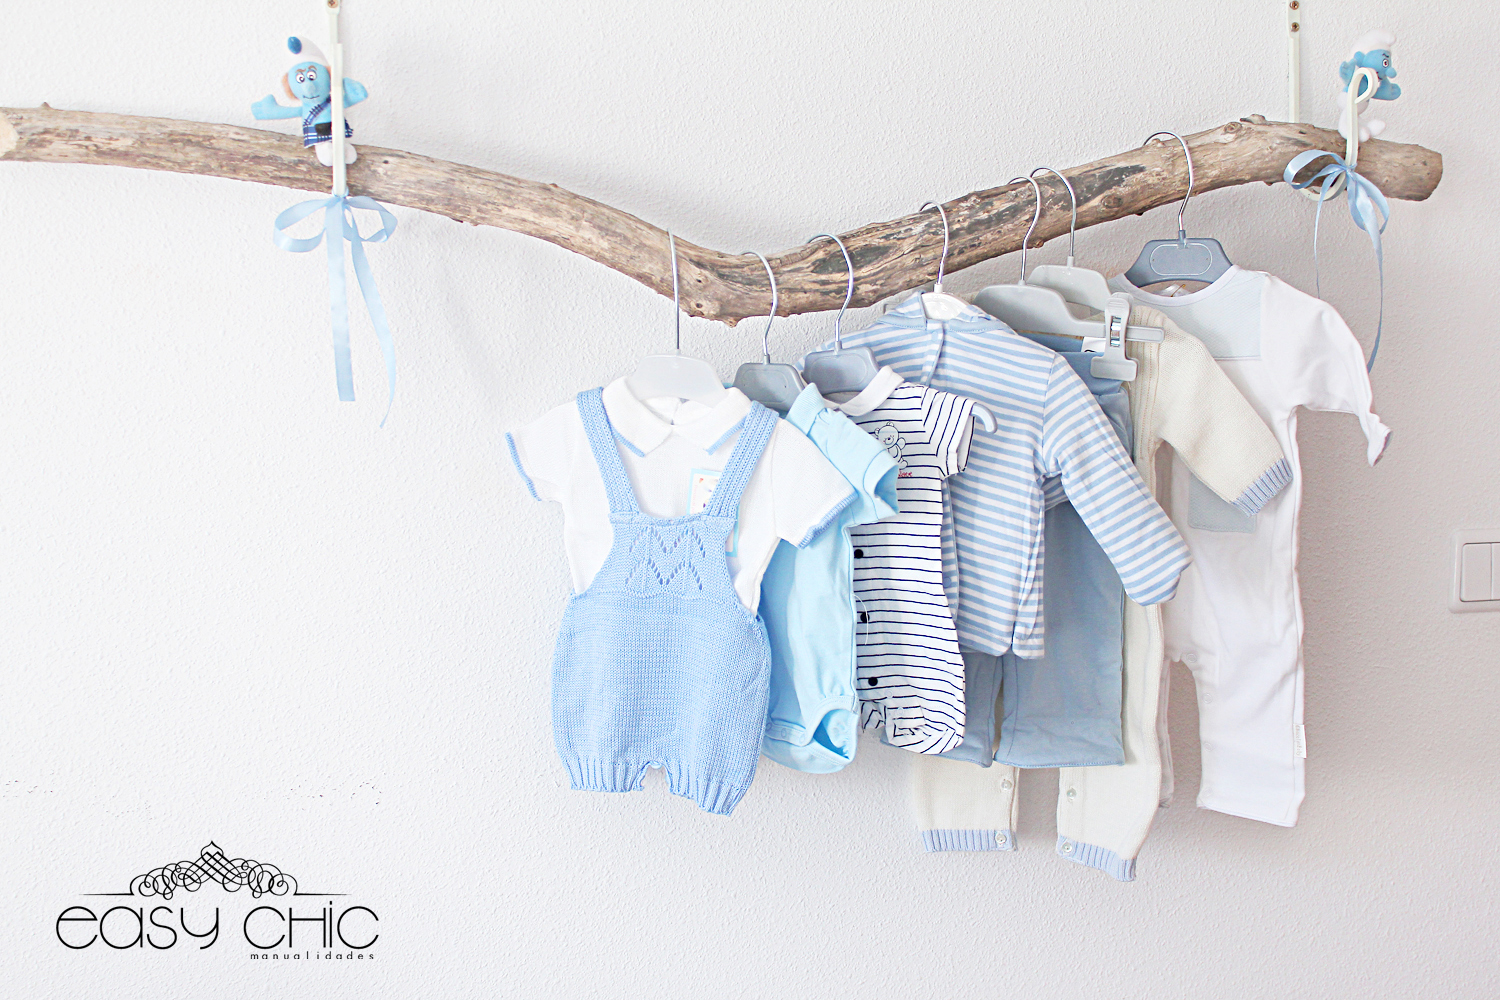 Easychic decoraci n diy de cuarto infantil el cuarto de for Como hacer un perchero de pared